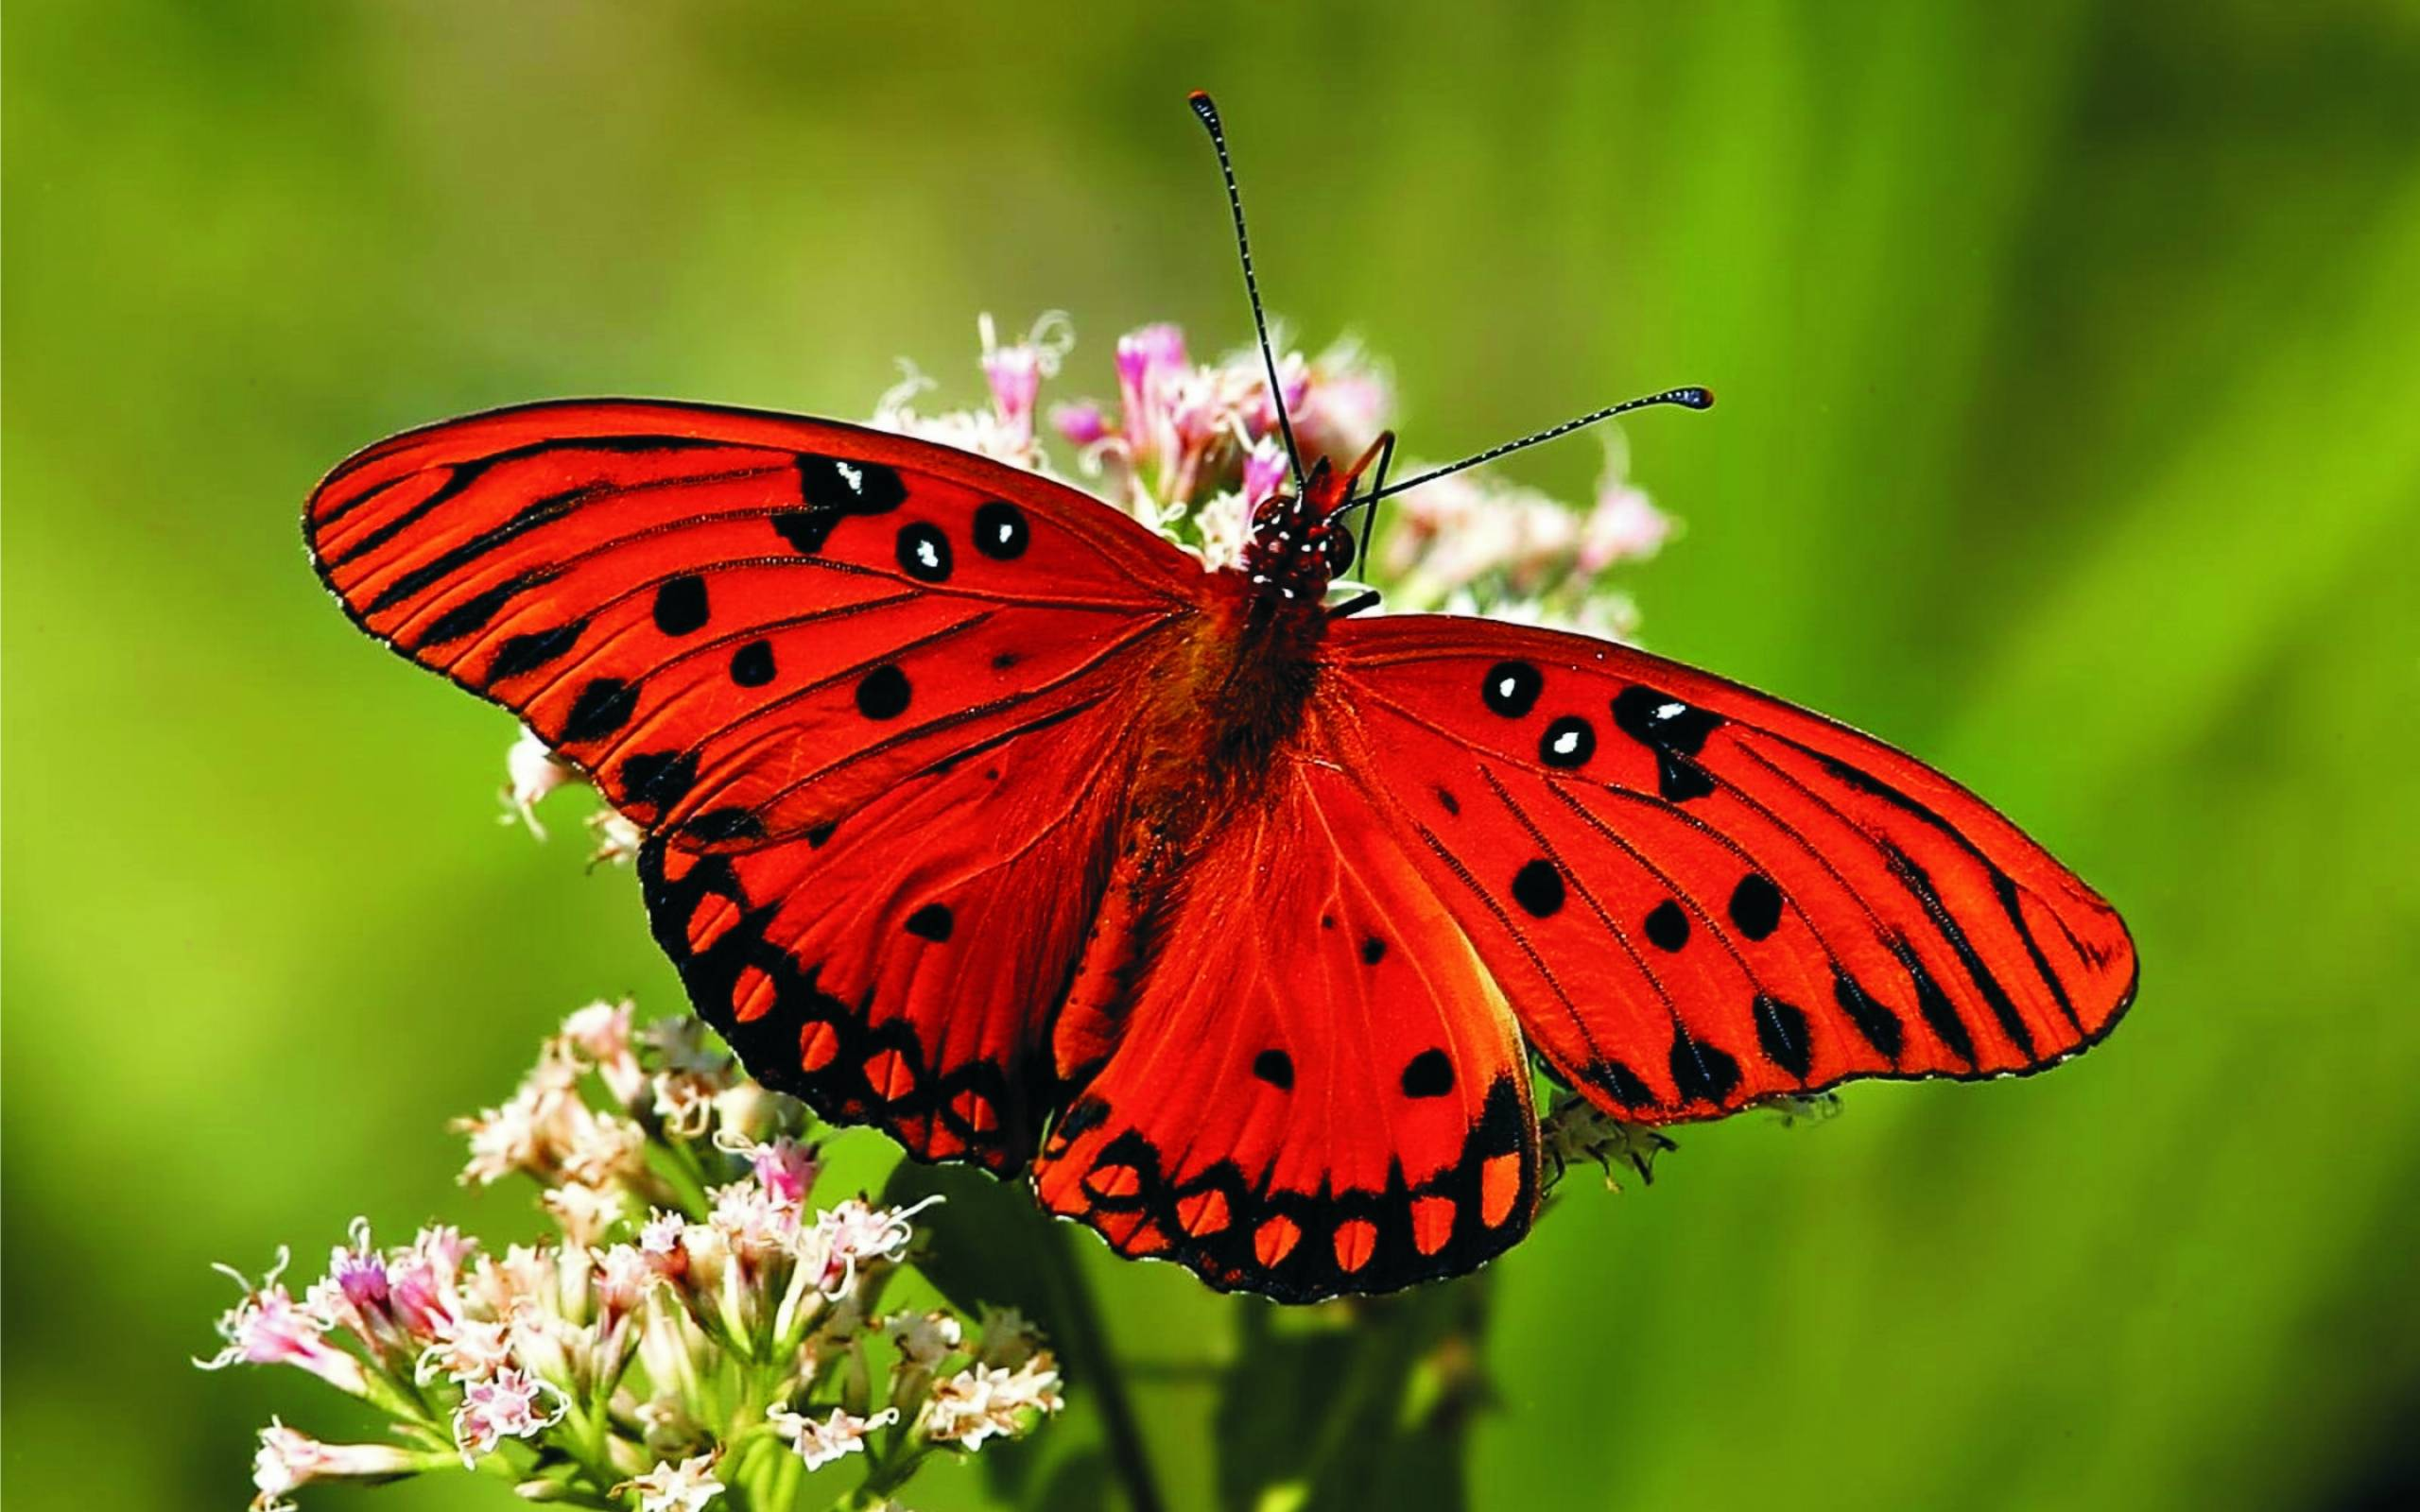 595468-red-butterfly